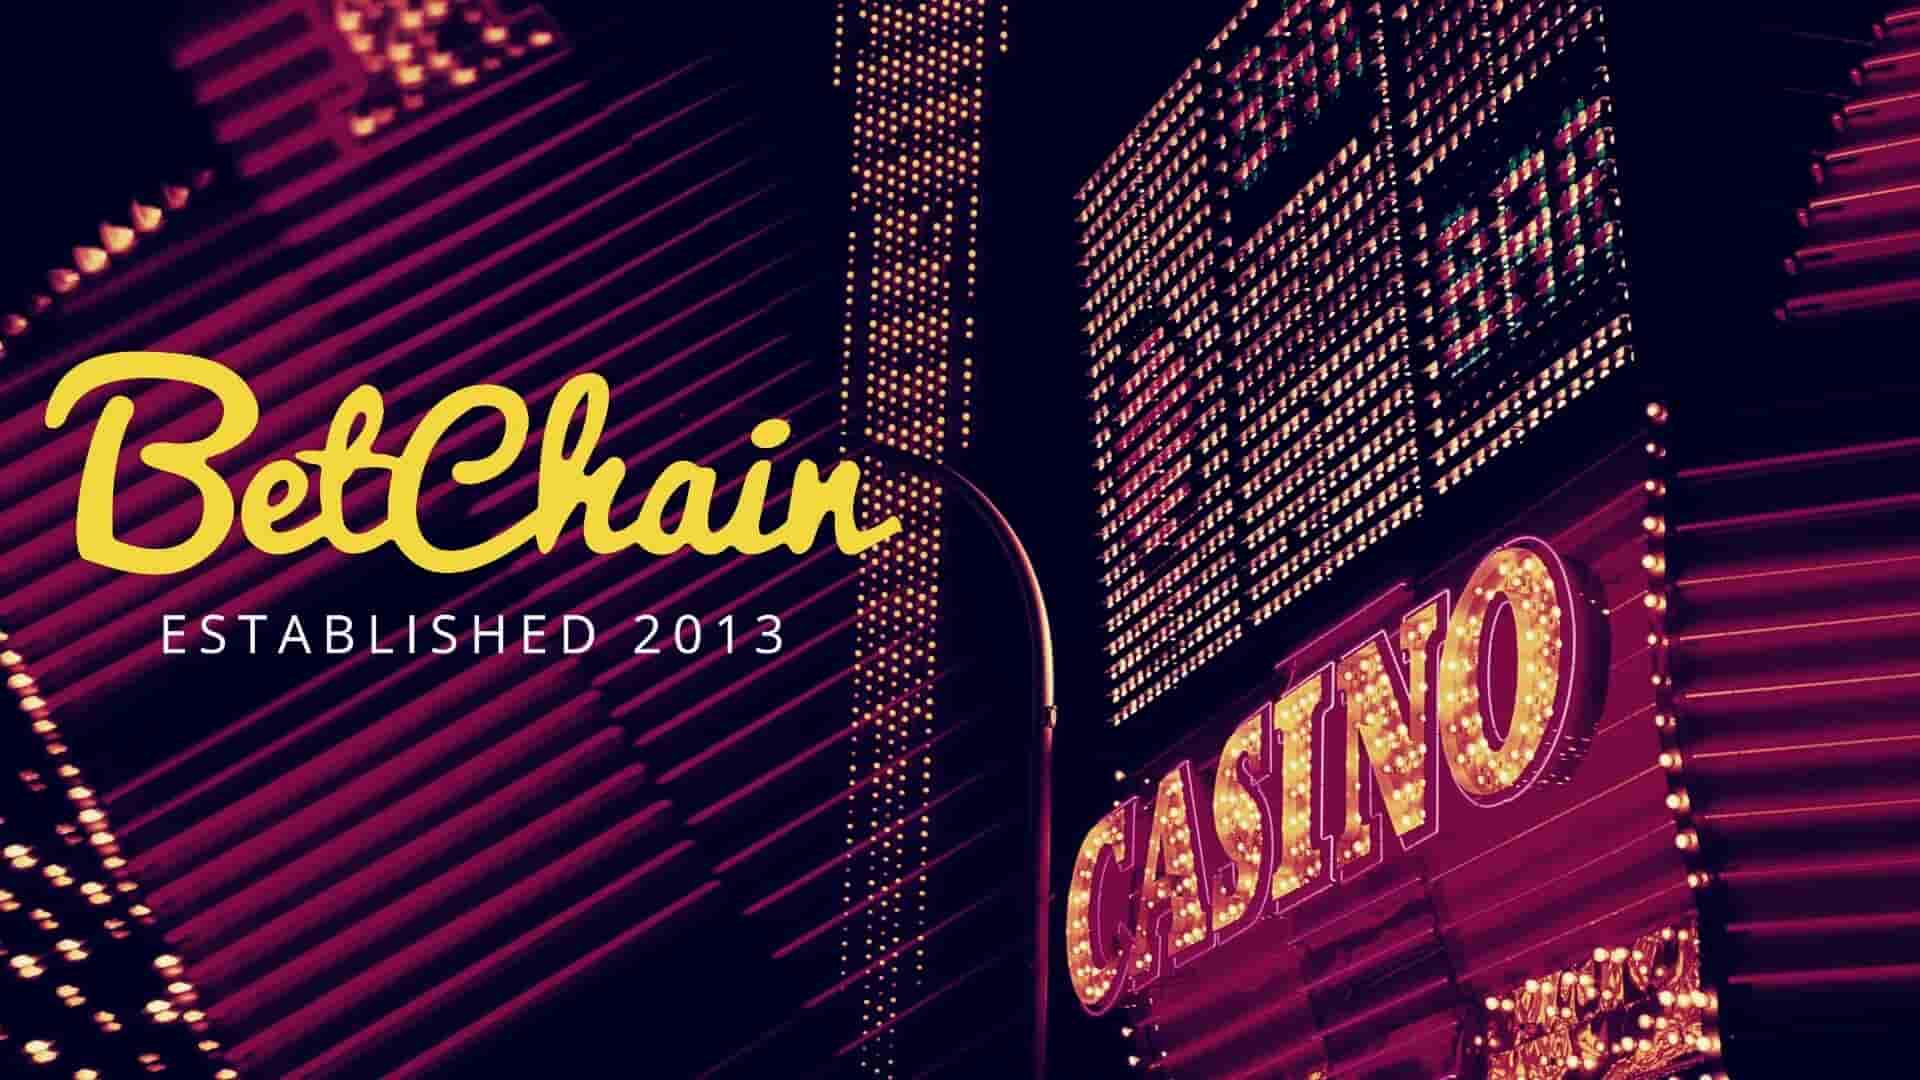 Betchain Casino Offers Different Lucrative Features To Its Users